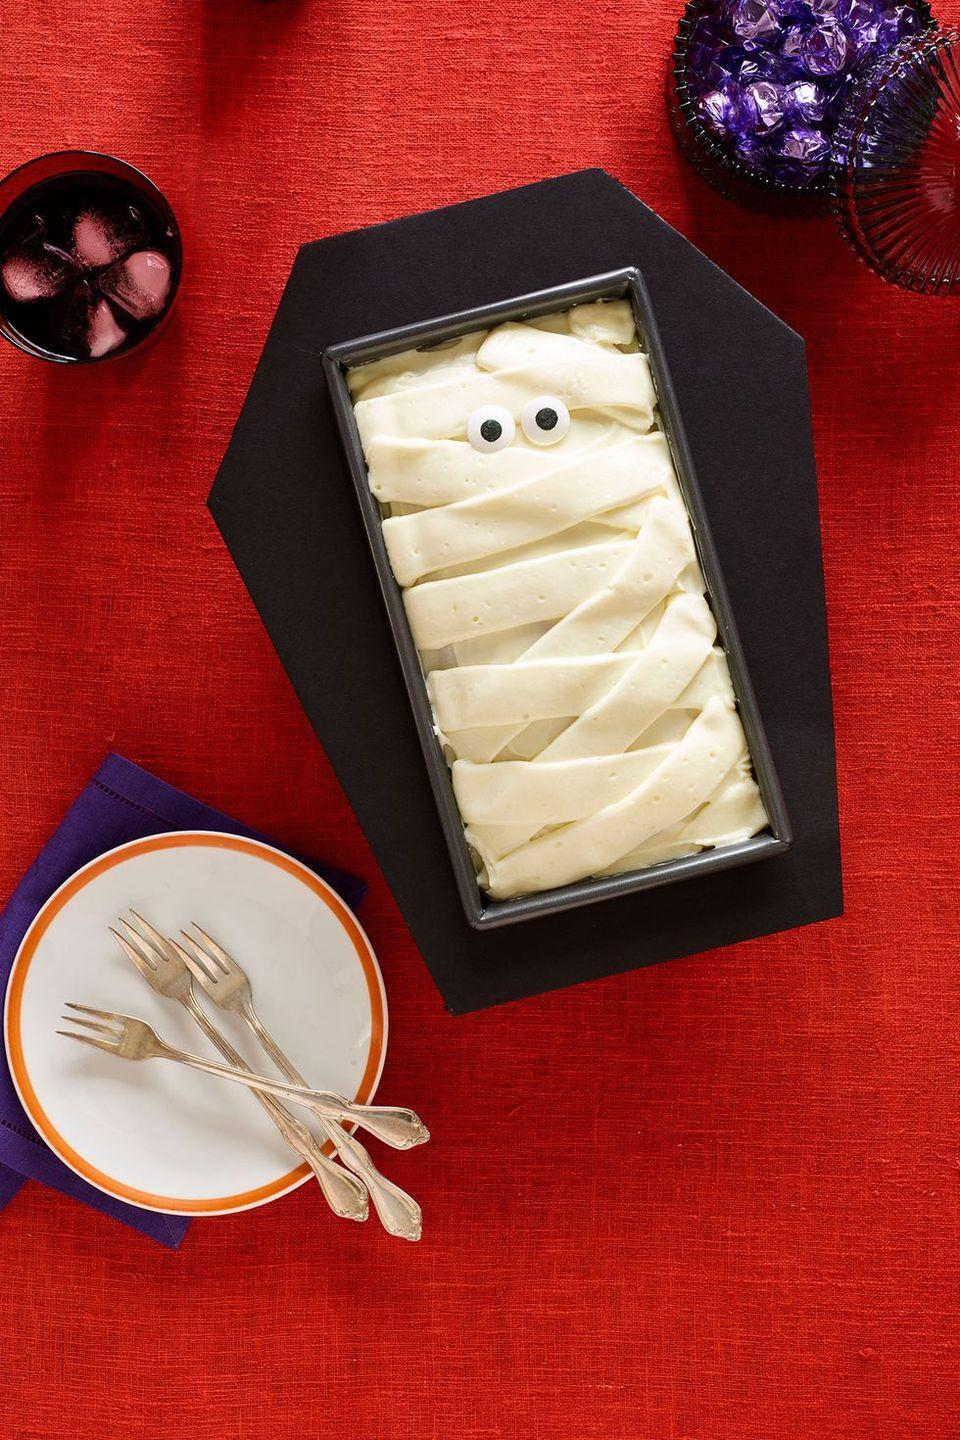 """<p>Thick bands of cream cheese frosting give this pumpkin loaf cake a mummified look.</p><p><a href=""""https://www.womansday.com/food-recipes/food-drinks/recipes/a60153/coffin-cake-recipe/"""" rel=""""nofollow noopener"""" target=""""_blank"""" data-ylk=""""slk:Get the recipe from Woman's Day »"""" class=""""link rapid-noclick-resp""""><em>Get the recipe from Woman's Day »</em></a> </p>"""